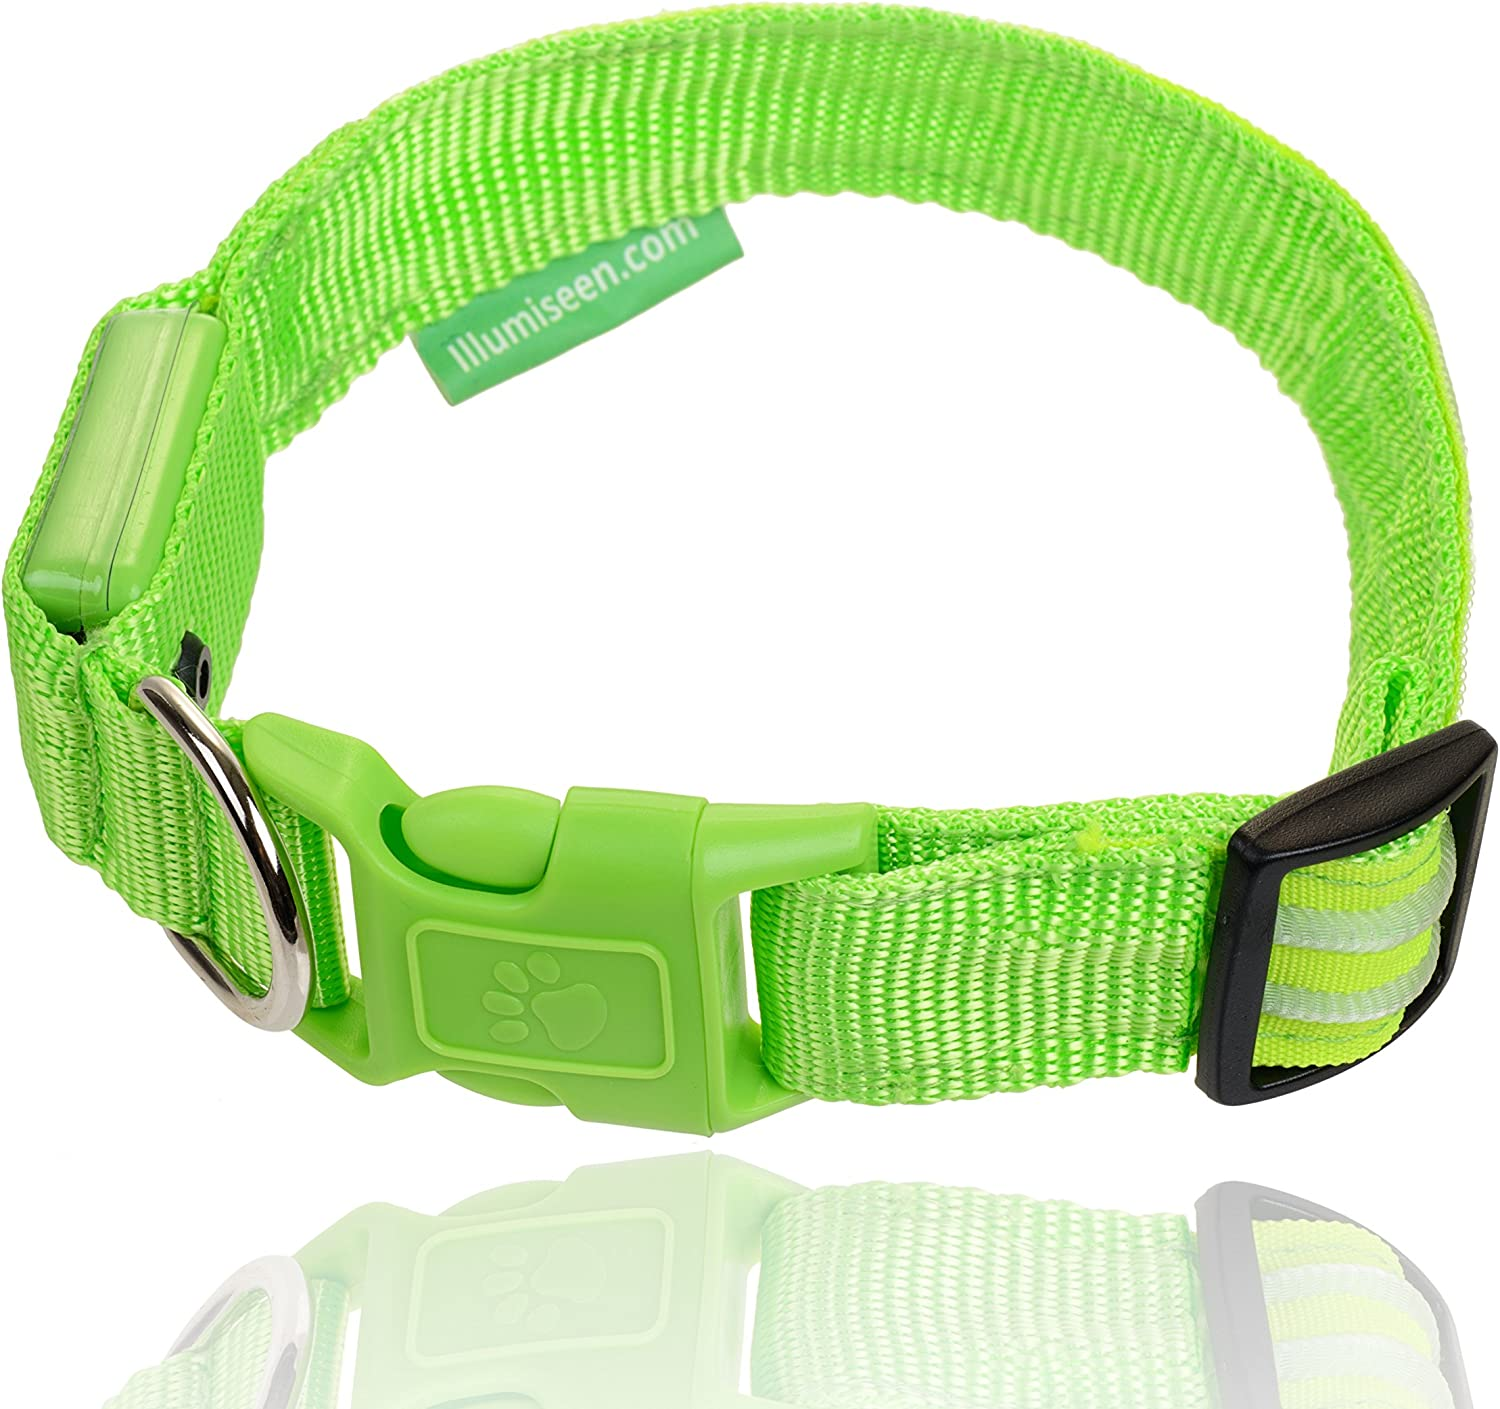 Safe /& Seen Makes Your Dog Visible Available in 6 Colors /& 6 Sizes USB Rechargeable Illumiseen LED Dog Collar